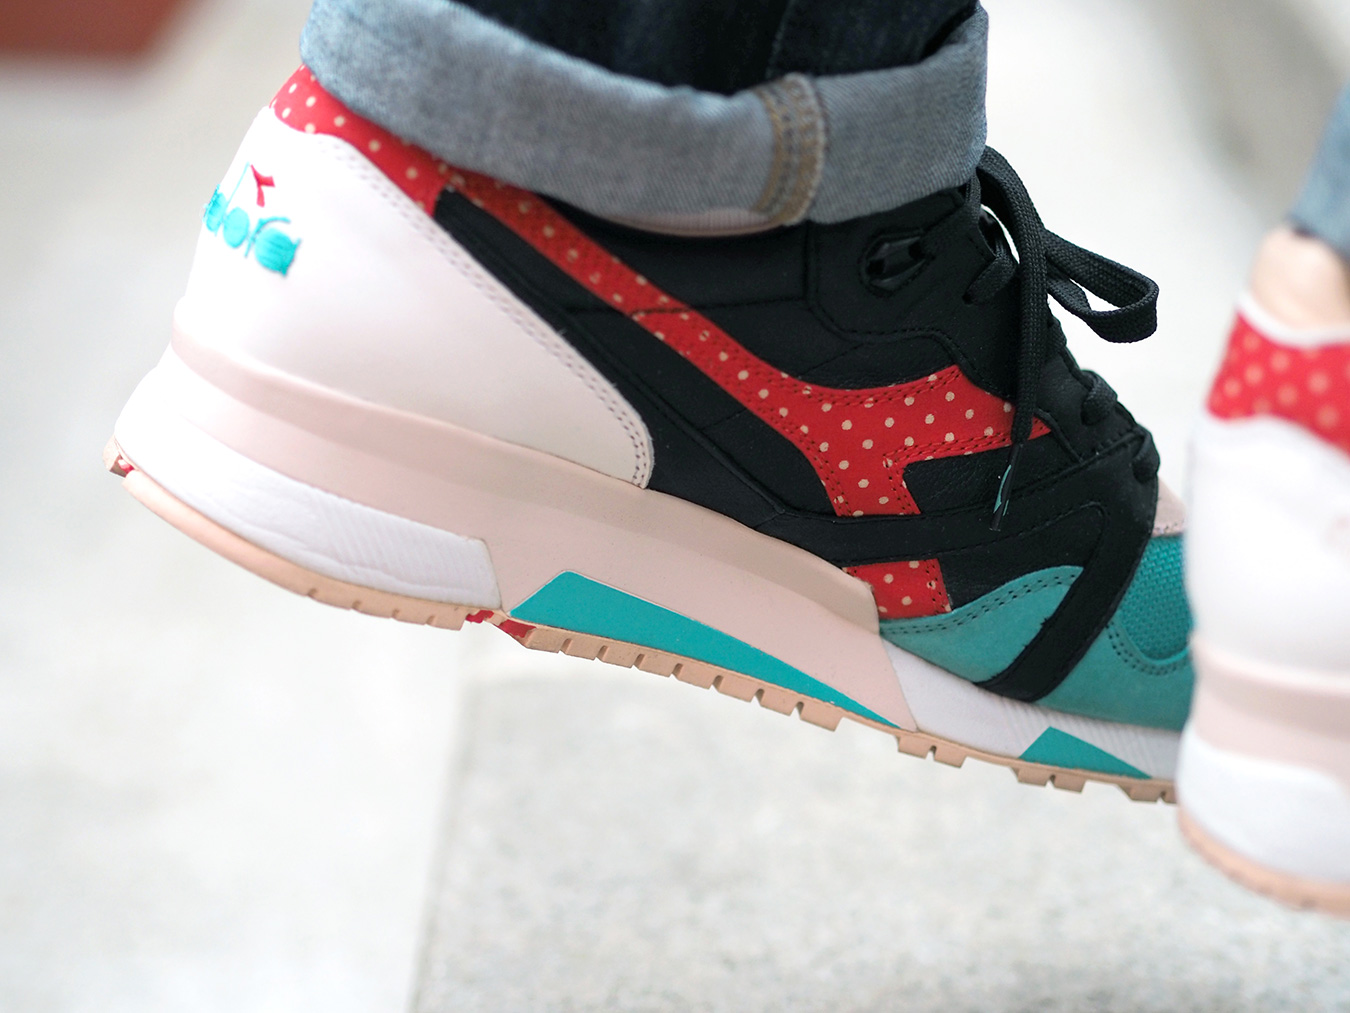 Diadora N9000 x Limiteditions